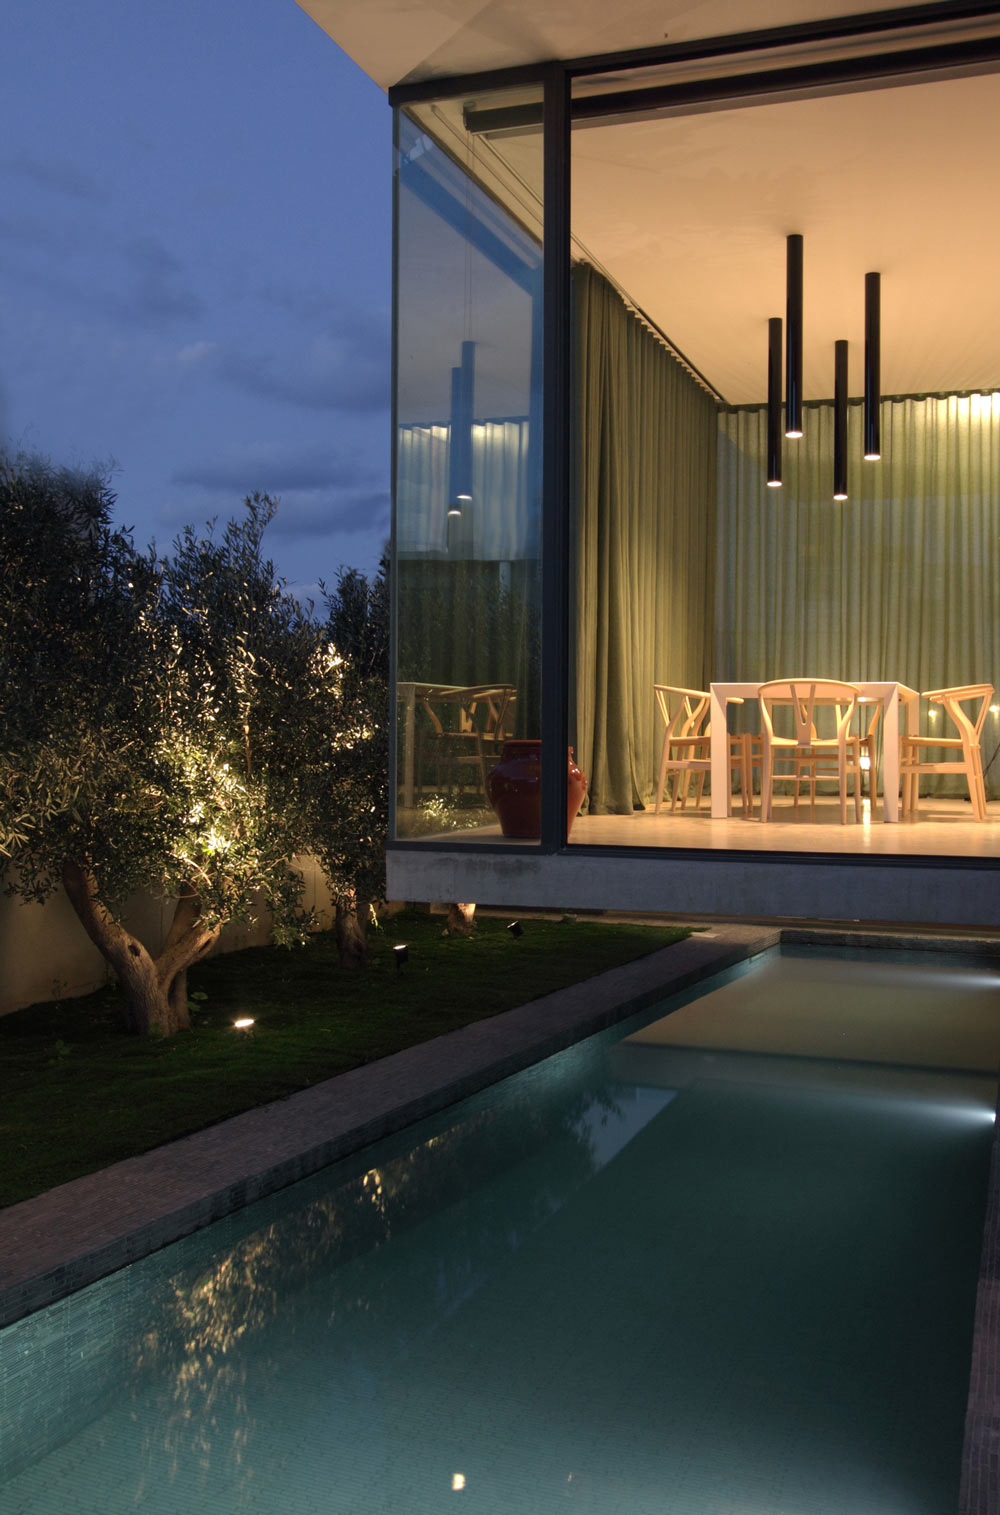 Cantilever, Dining Room, Pool, Hanging Home in Naxxar, Malta by Chris Briffa Architects